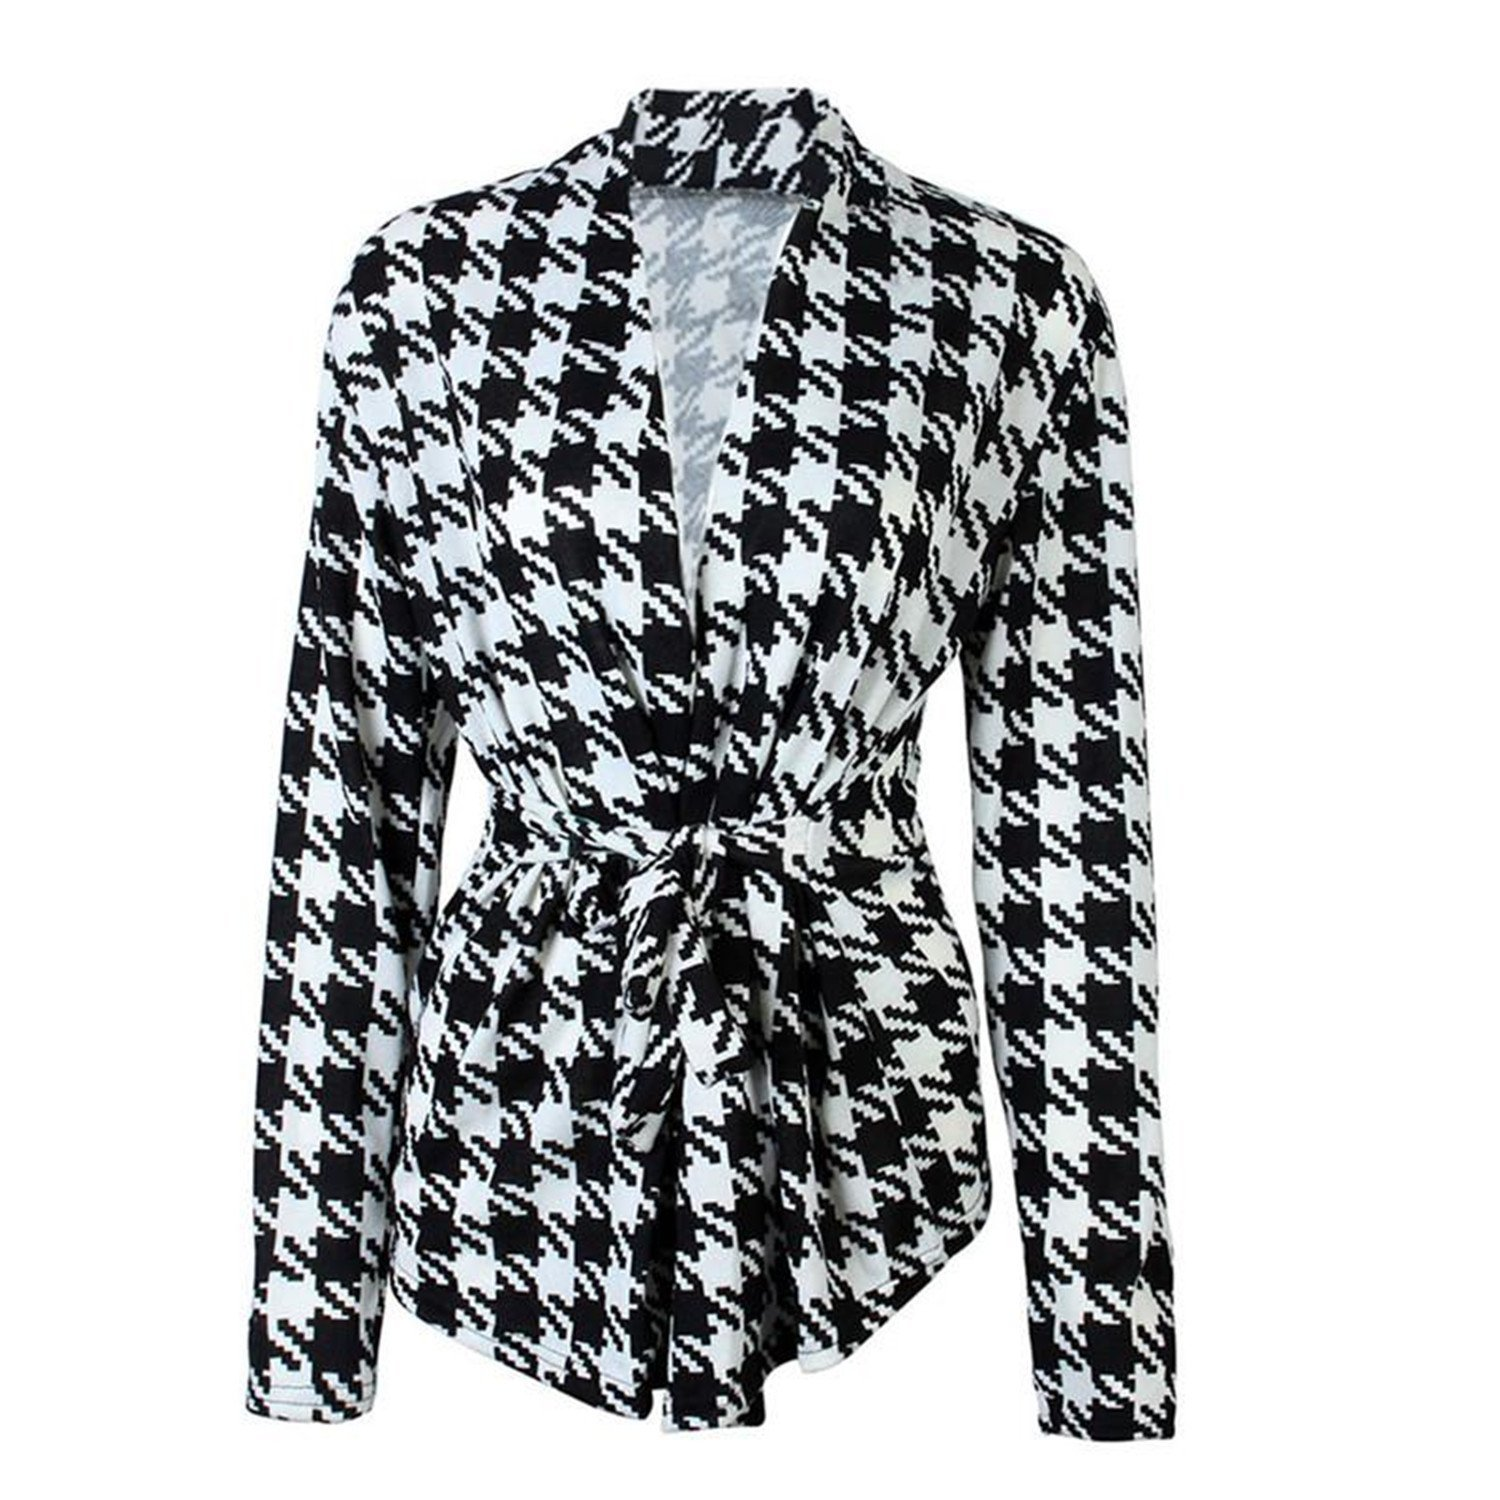 cb44a1158b2d Get Quotations · Michael Palmer Women Jackets Black White Plaid Blazer Coat  Work Wear Office OL style Blazer with